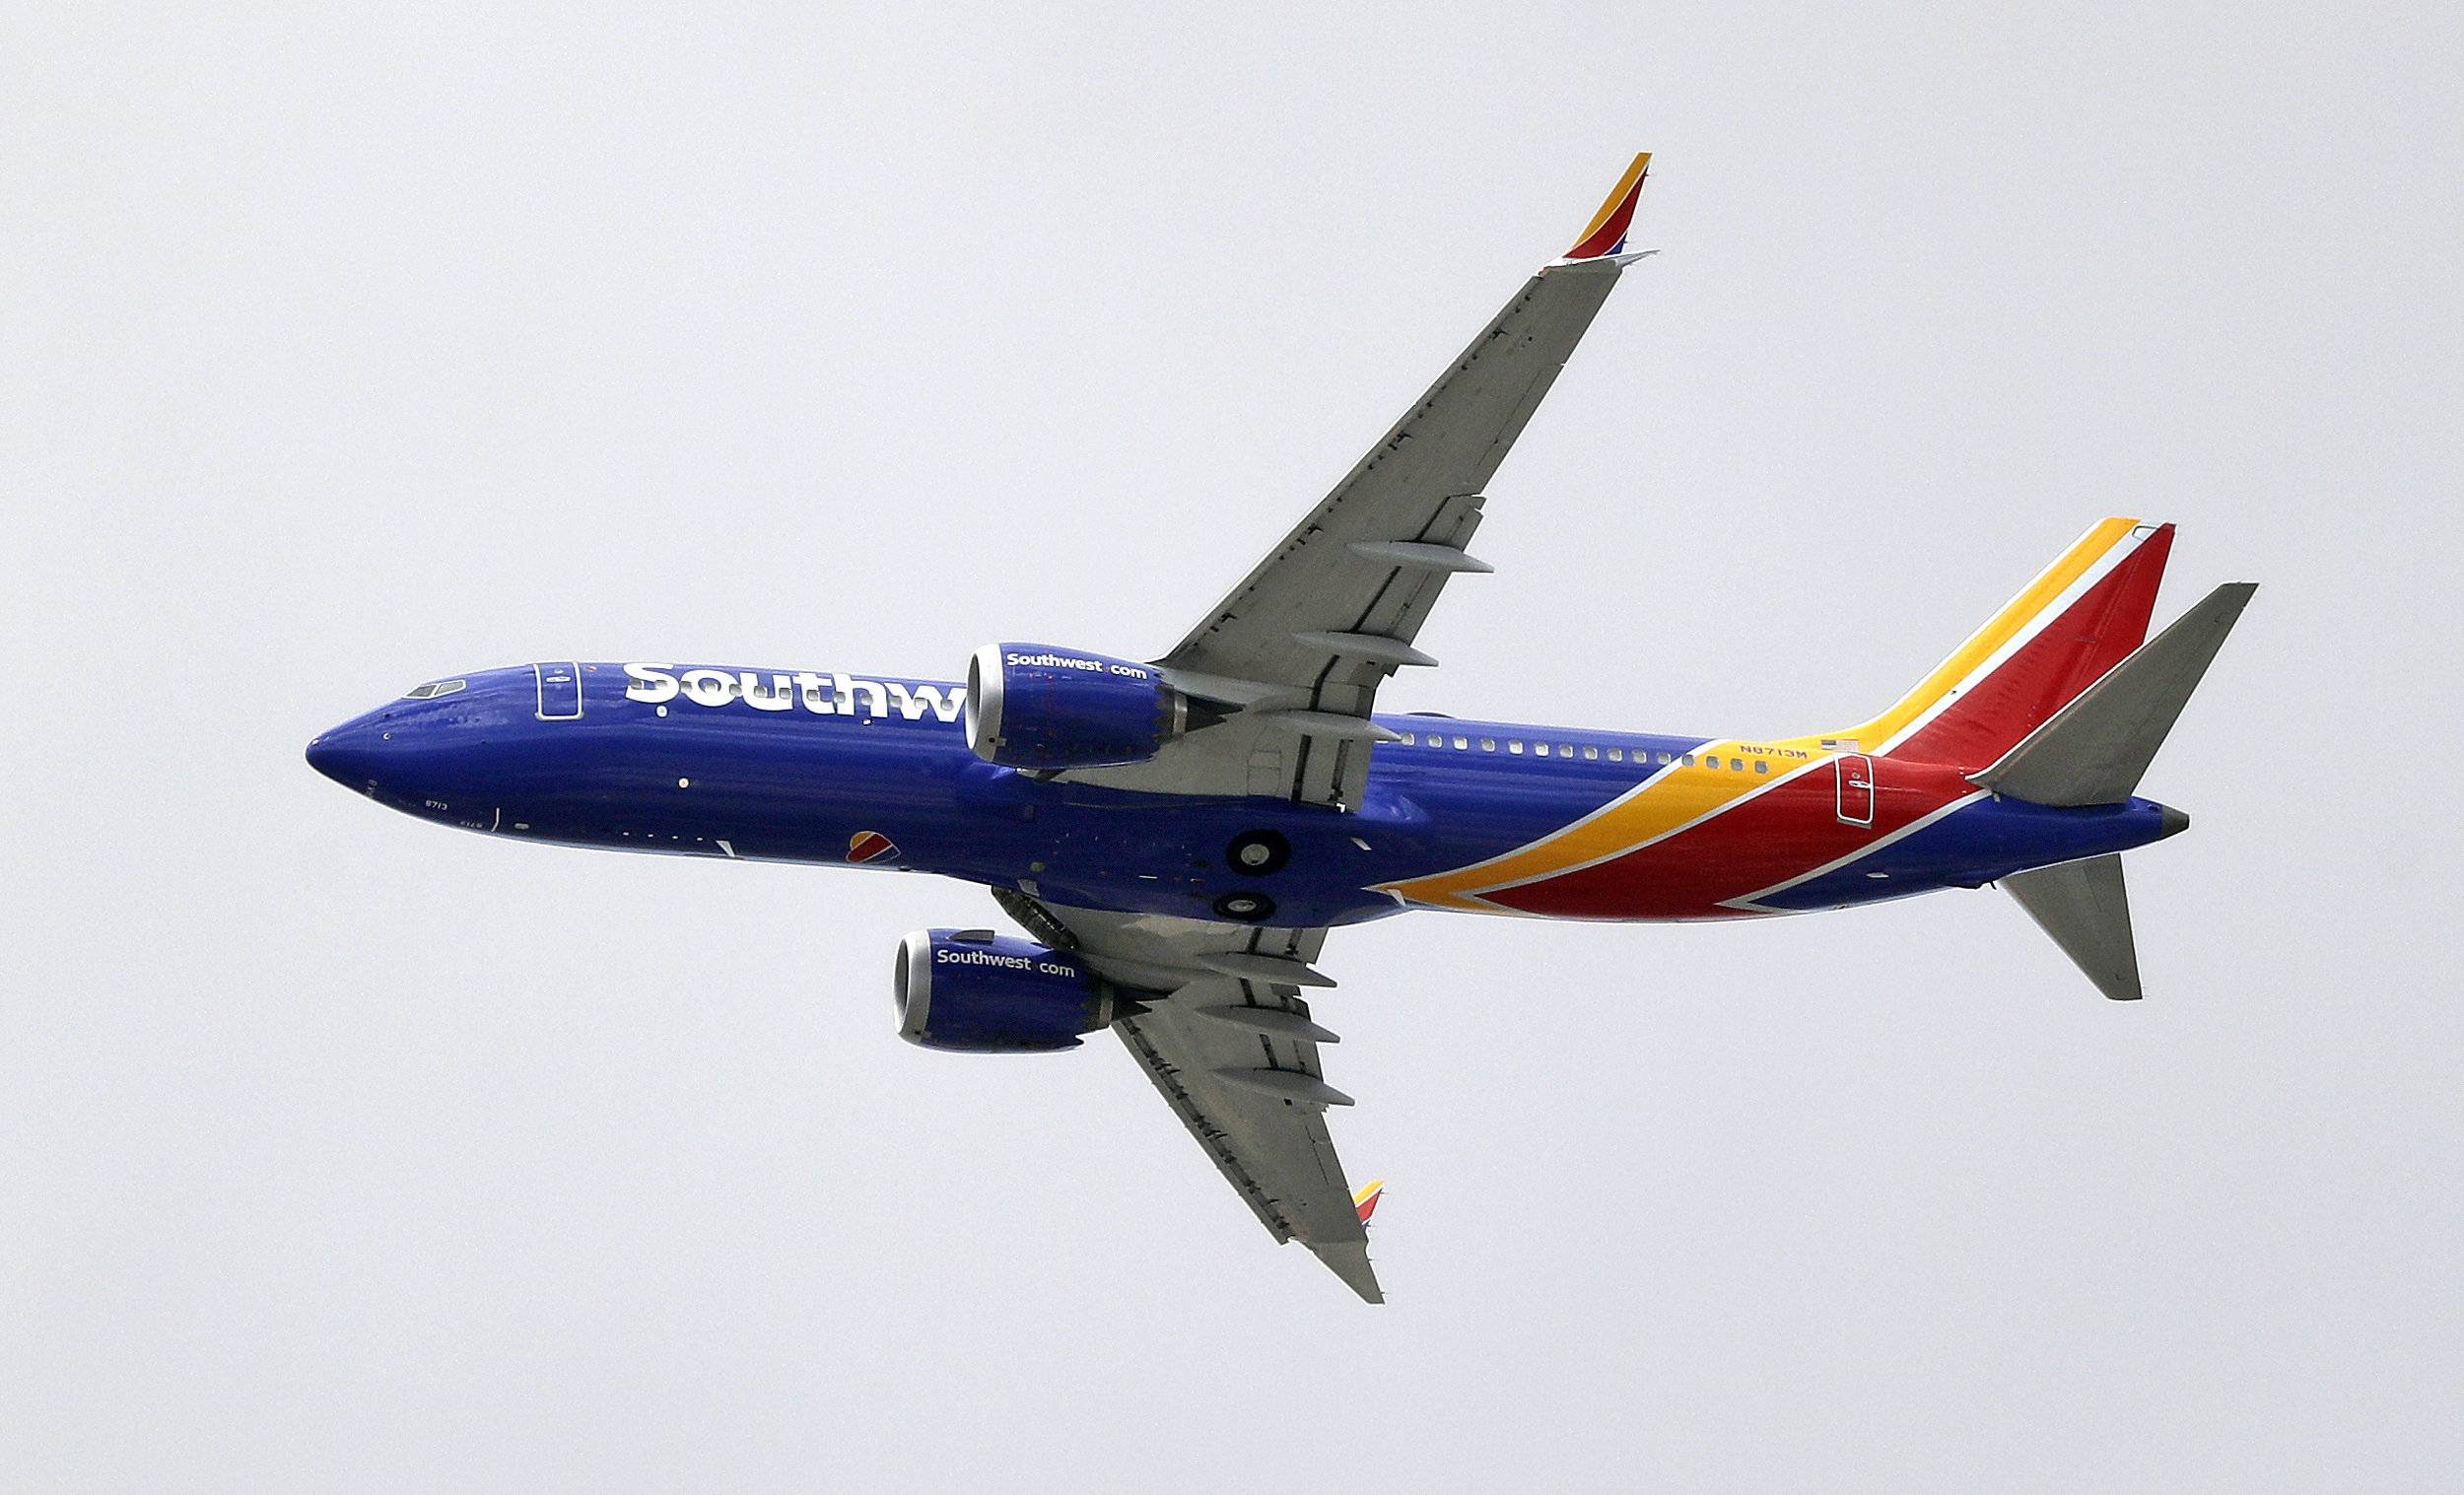 FILE - On this Wednesday, March 13, 2019, file photo, a Southwest Airlines Boeing 737 Max 8 jet flies over Mesa, Ariz., en route to Phoenix's Sky Harbor International Airport. Pilot-union leaders at Southwest Airlines say it could be February or March 2020 before their airline resumes flights using the Boeing 737 Max. (AP Photo/Elaine Thompson, File)